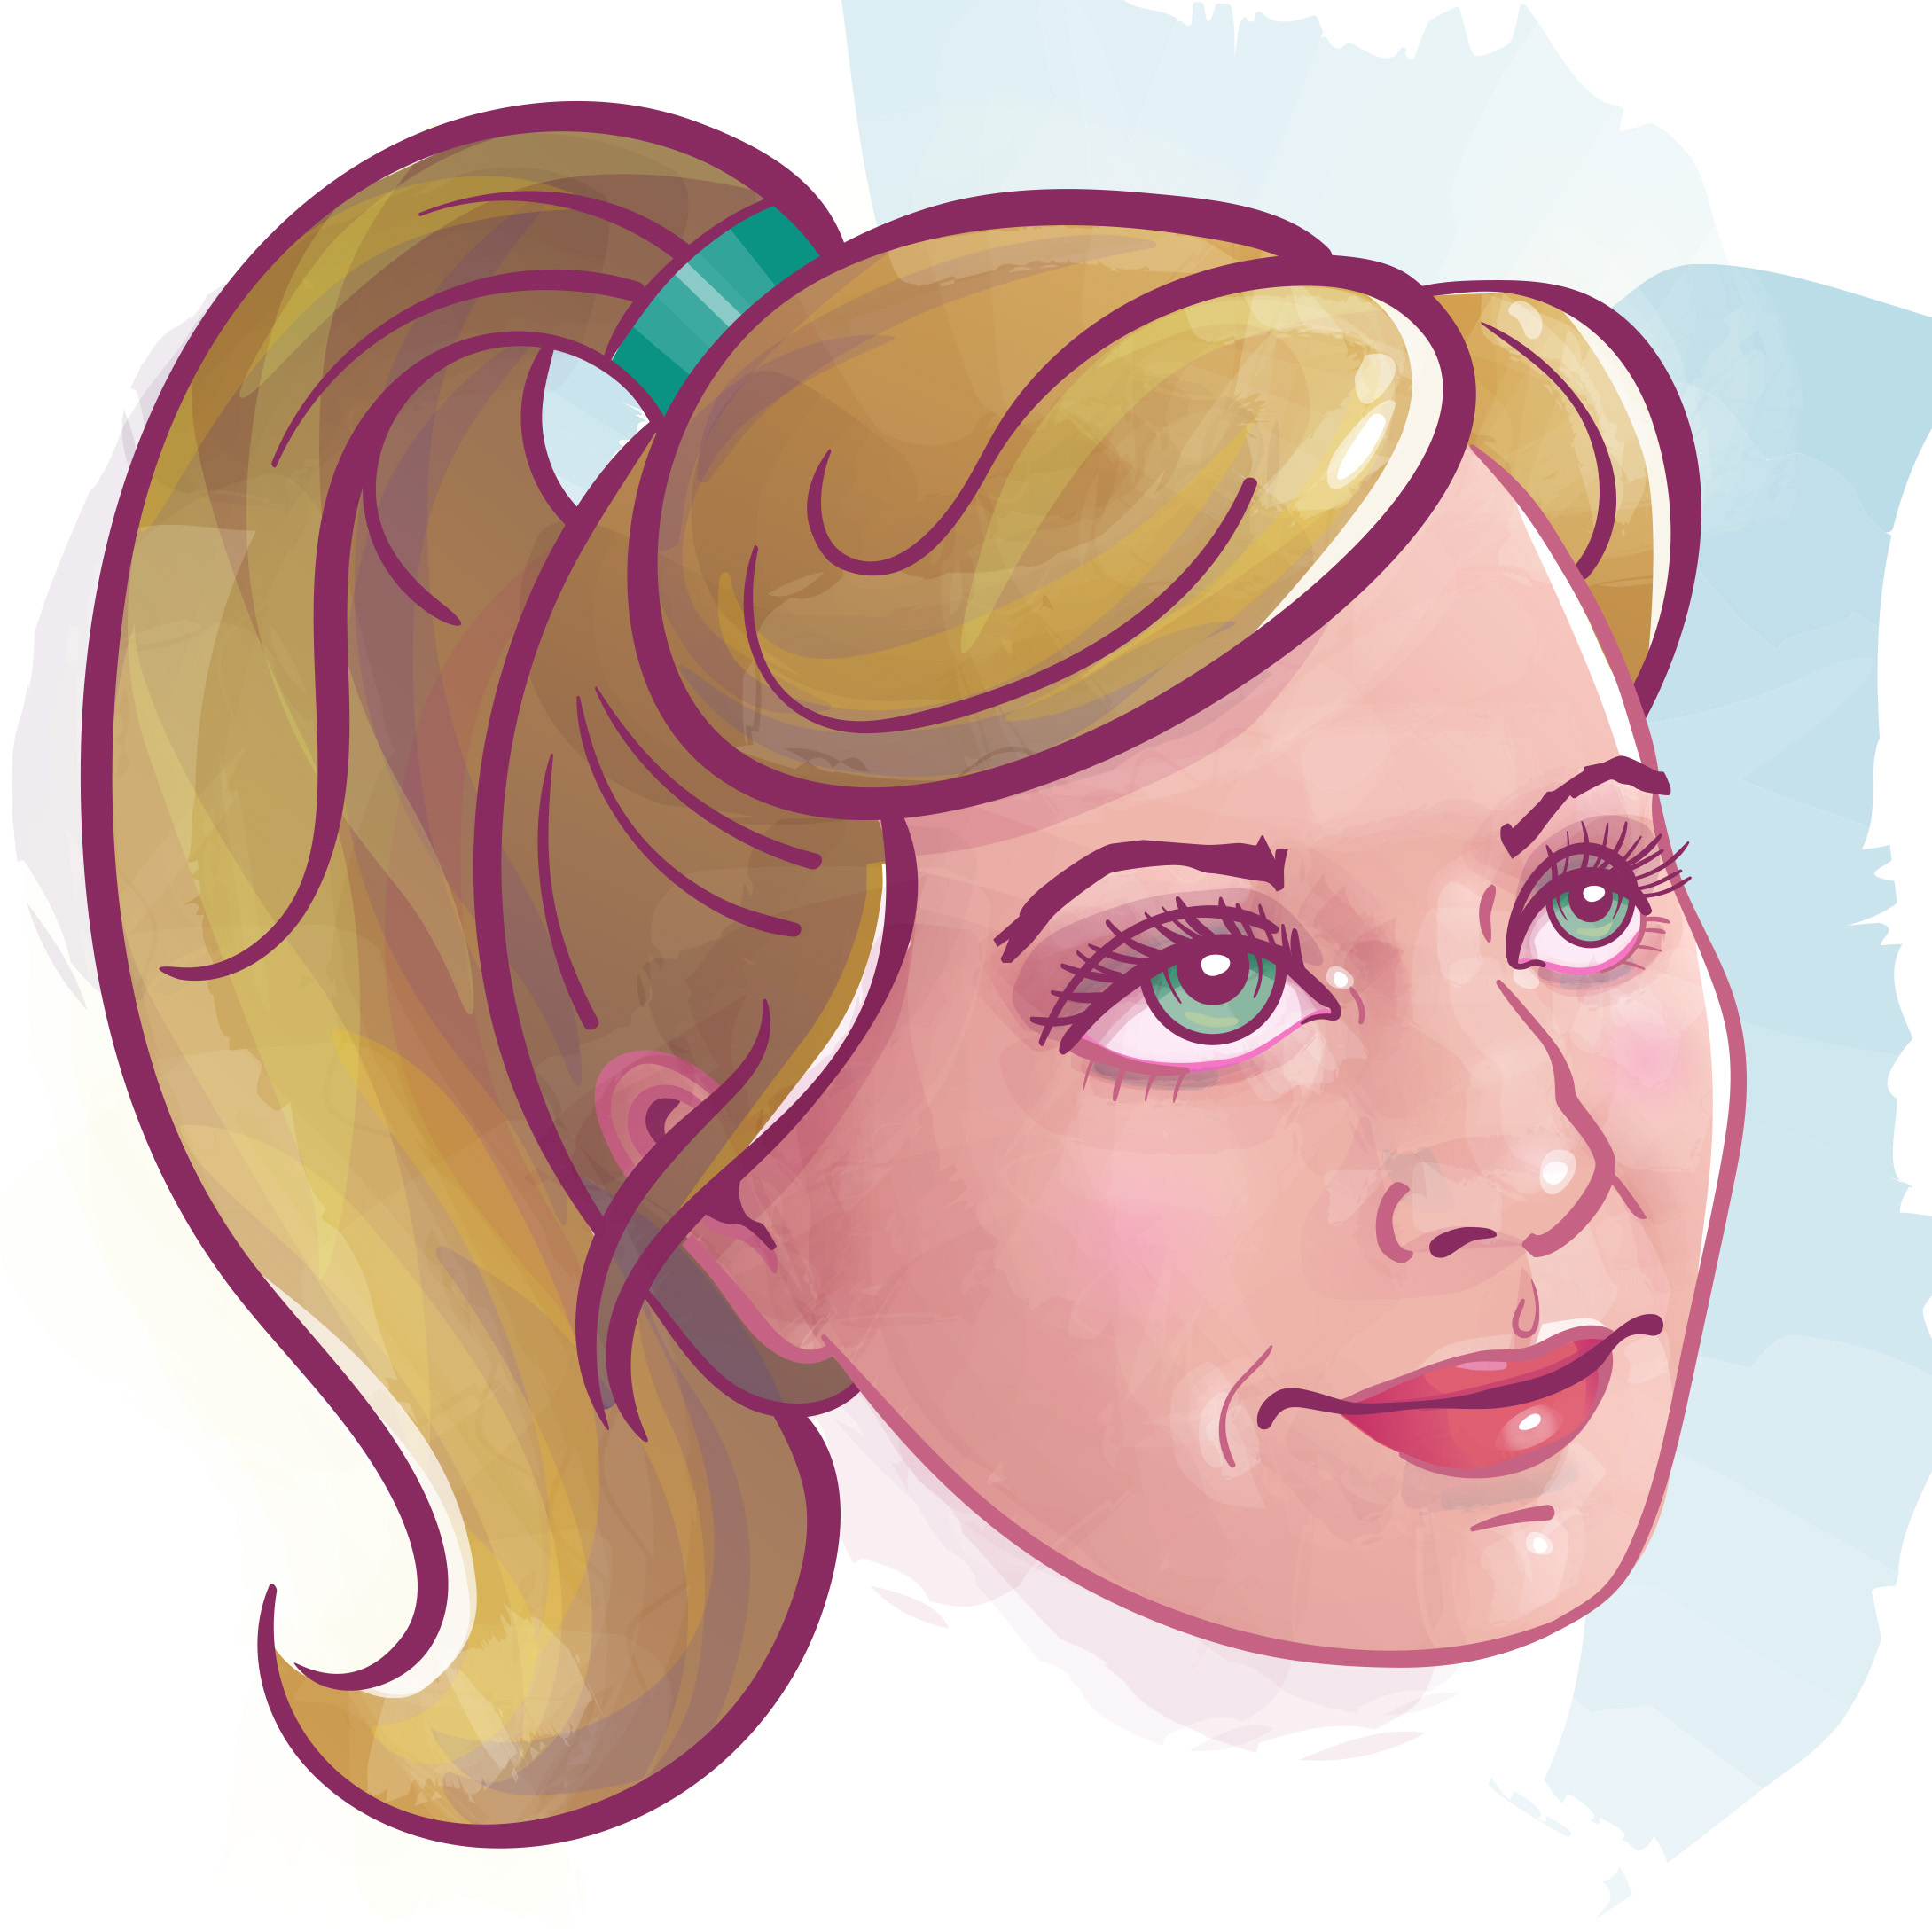 Final Avatar - Here is the final princess version of me! It will be worked into a storybook-style design piece that illustrates my resumé.